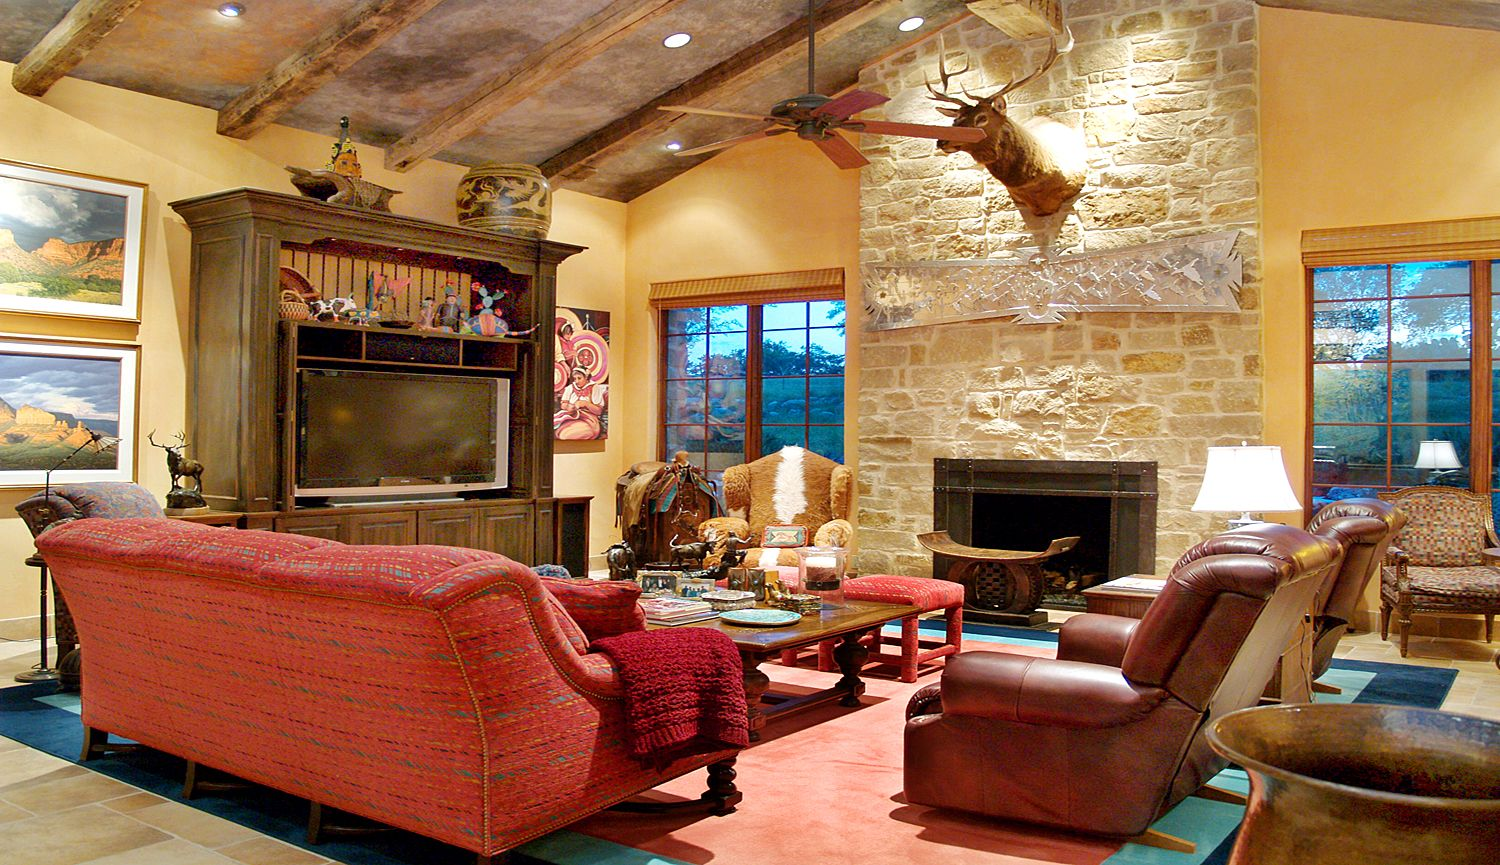 Living Room Design With Red Sofa For You By Luxury Home Designer And Builder Dearth